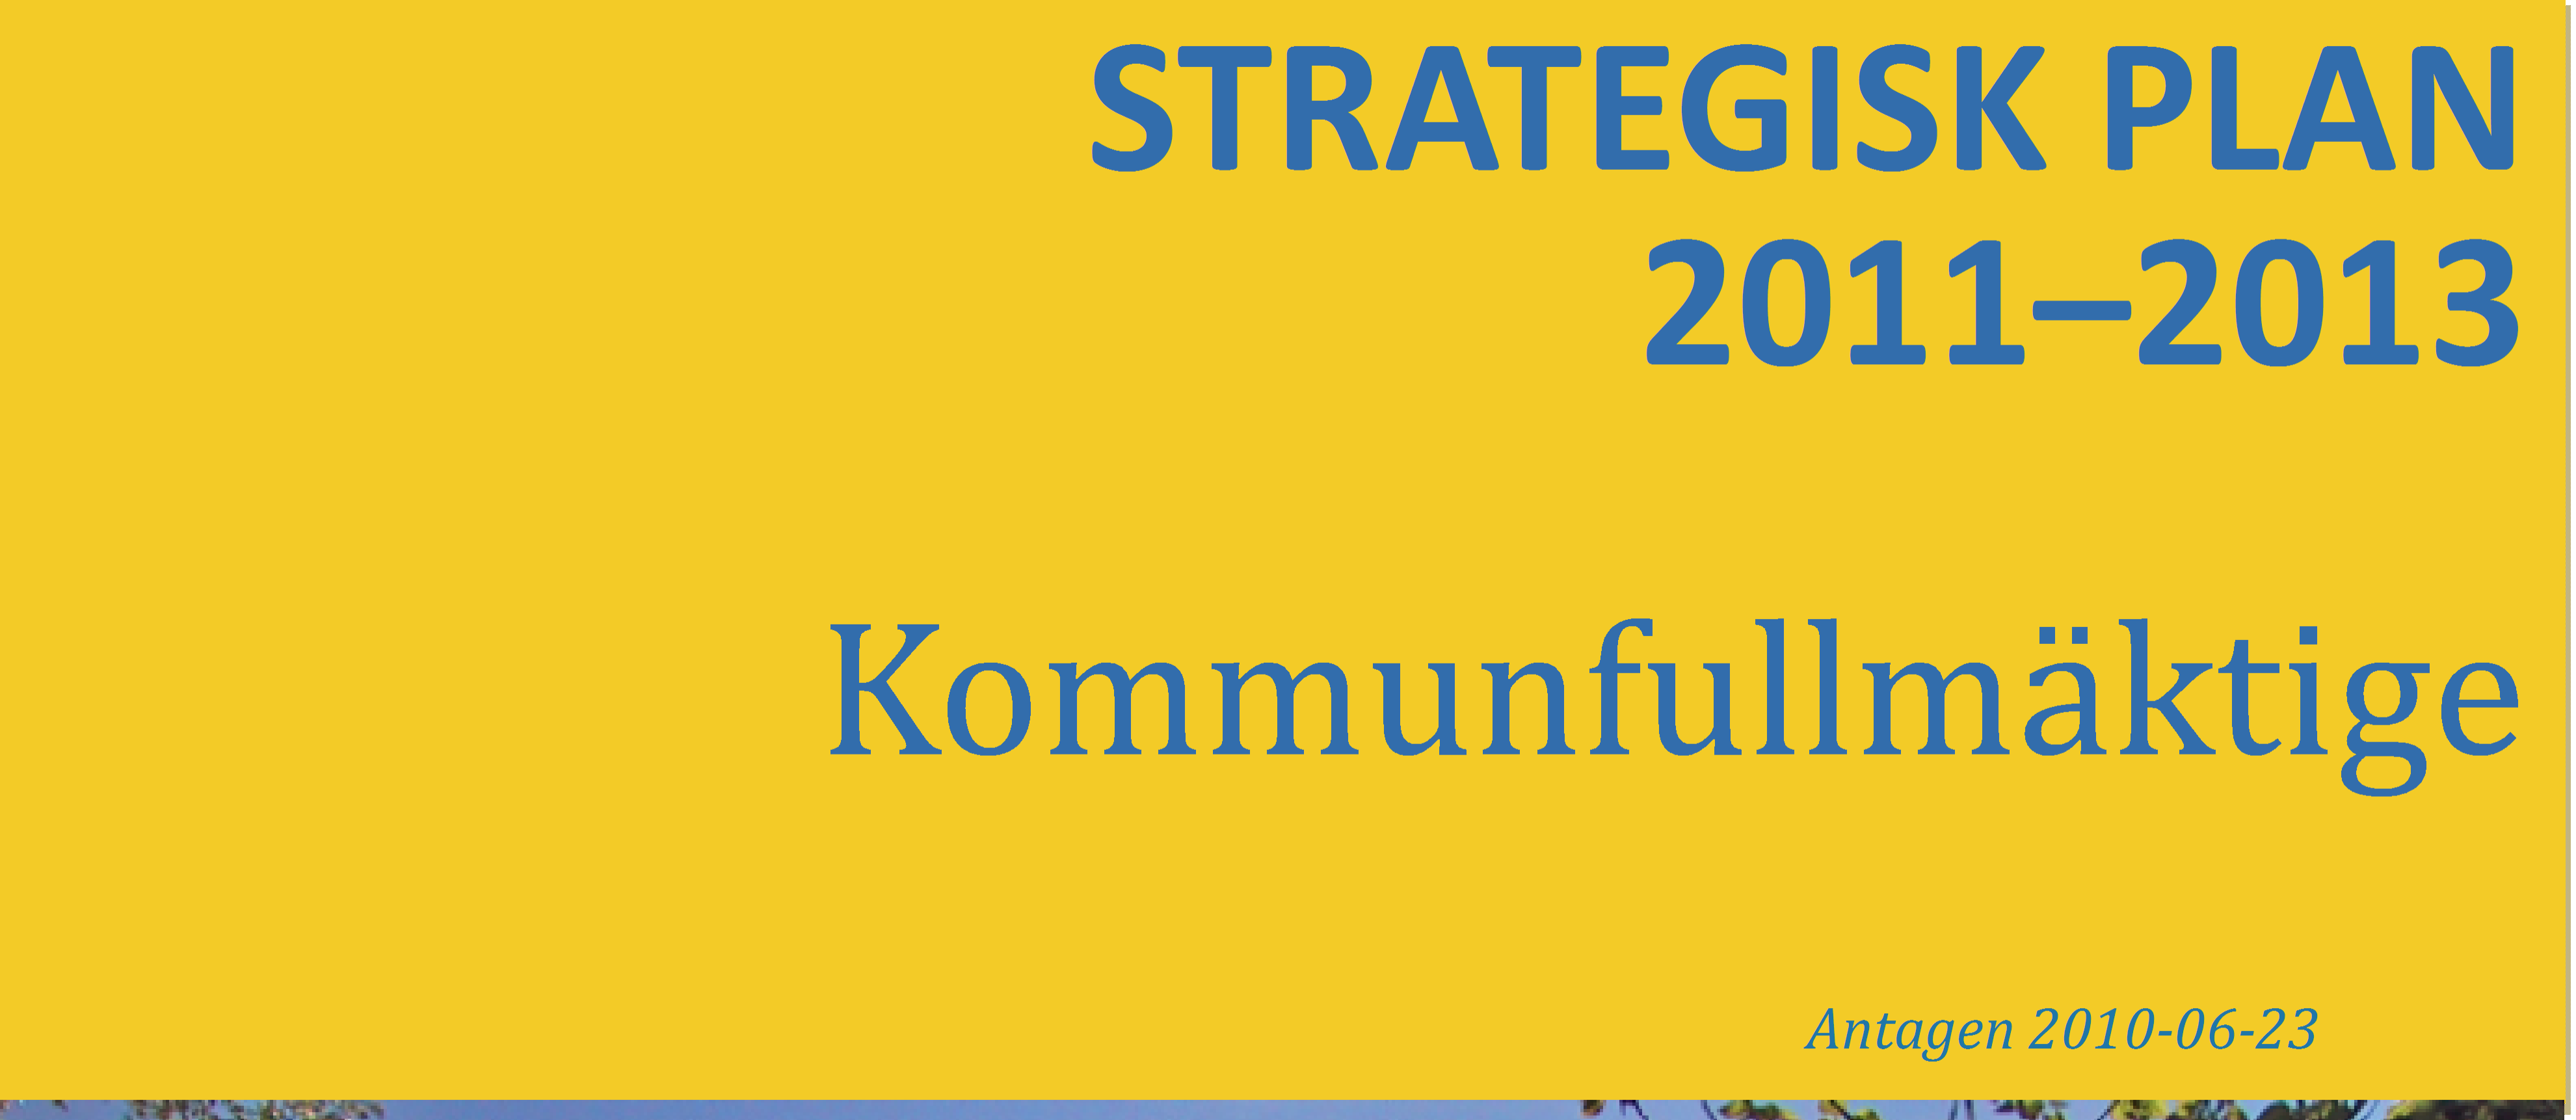 STRATEGISK PLAN